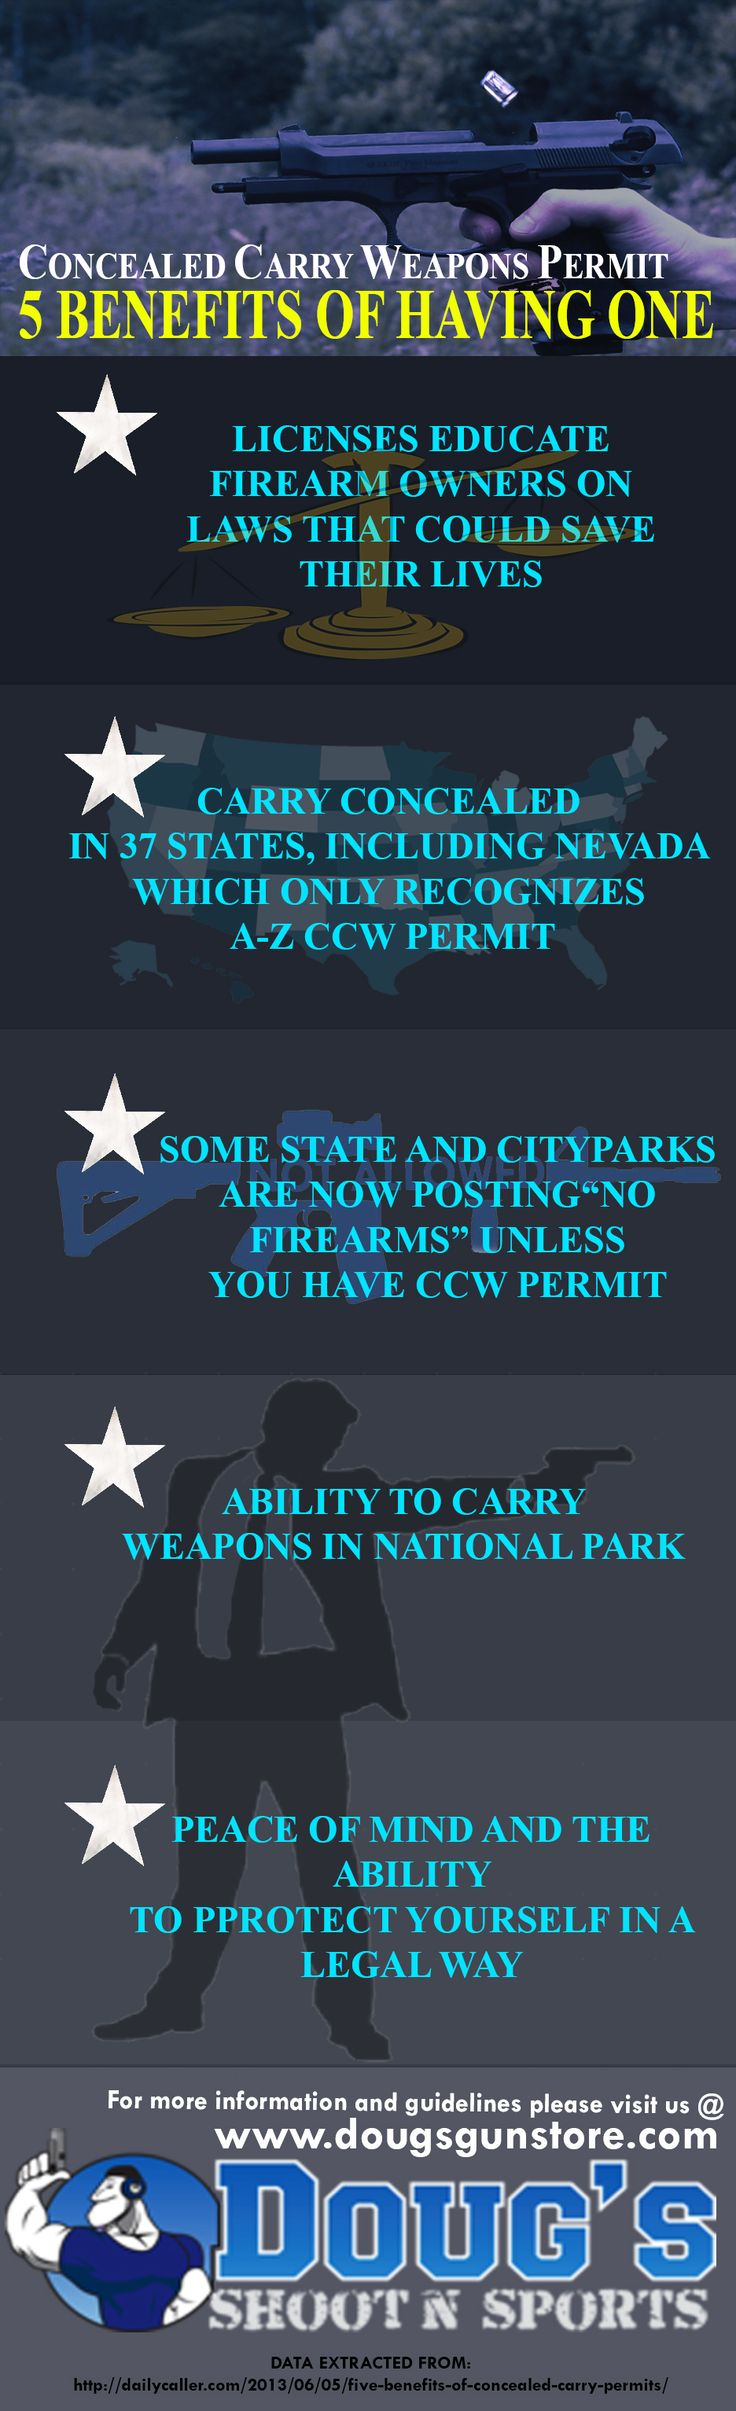 Here are the benefits of having CCW permit. Go and grab your permit now. For more details about CCW permit please visit the official website of Doug's guns store. #concealedweaponspermit  #weaponspermitclass #concealedweaponspermitclassesutah